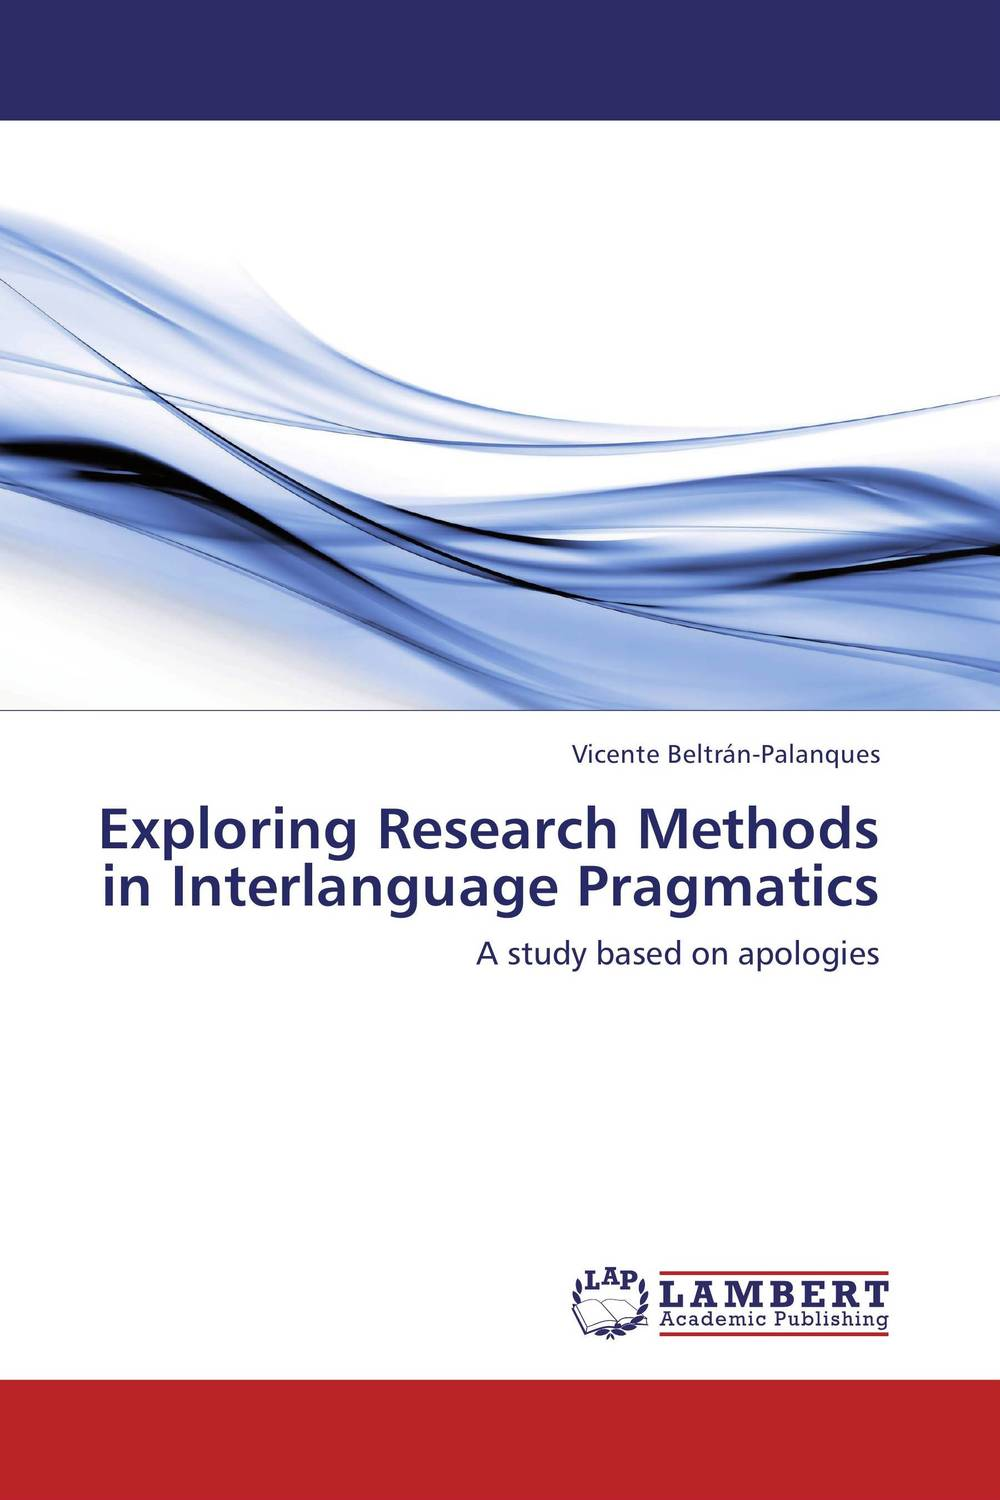 Exploring Research Methods in Interlanguage Pragmatics dynamic assessment and interlanguage pragmatics